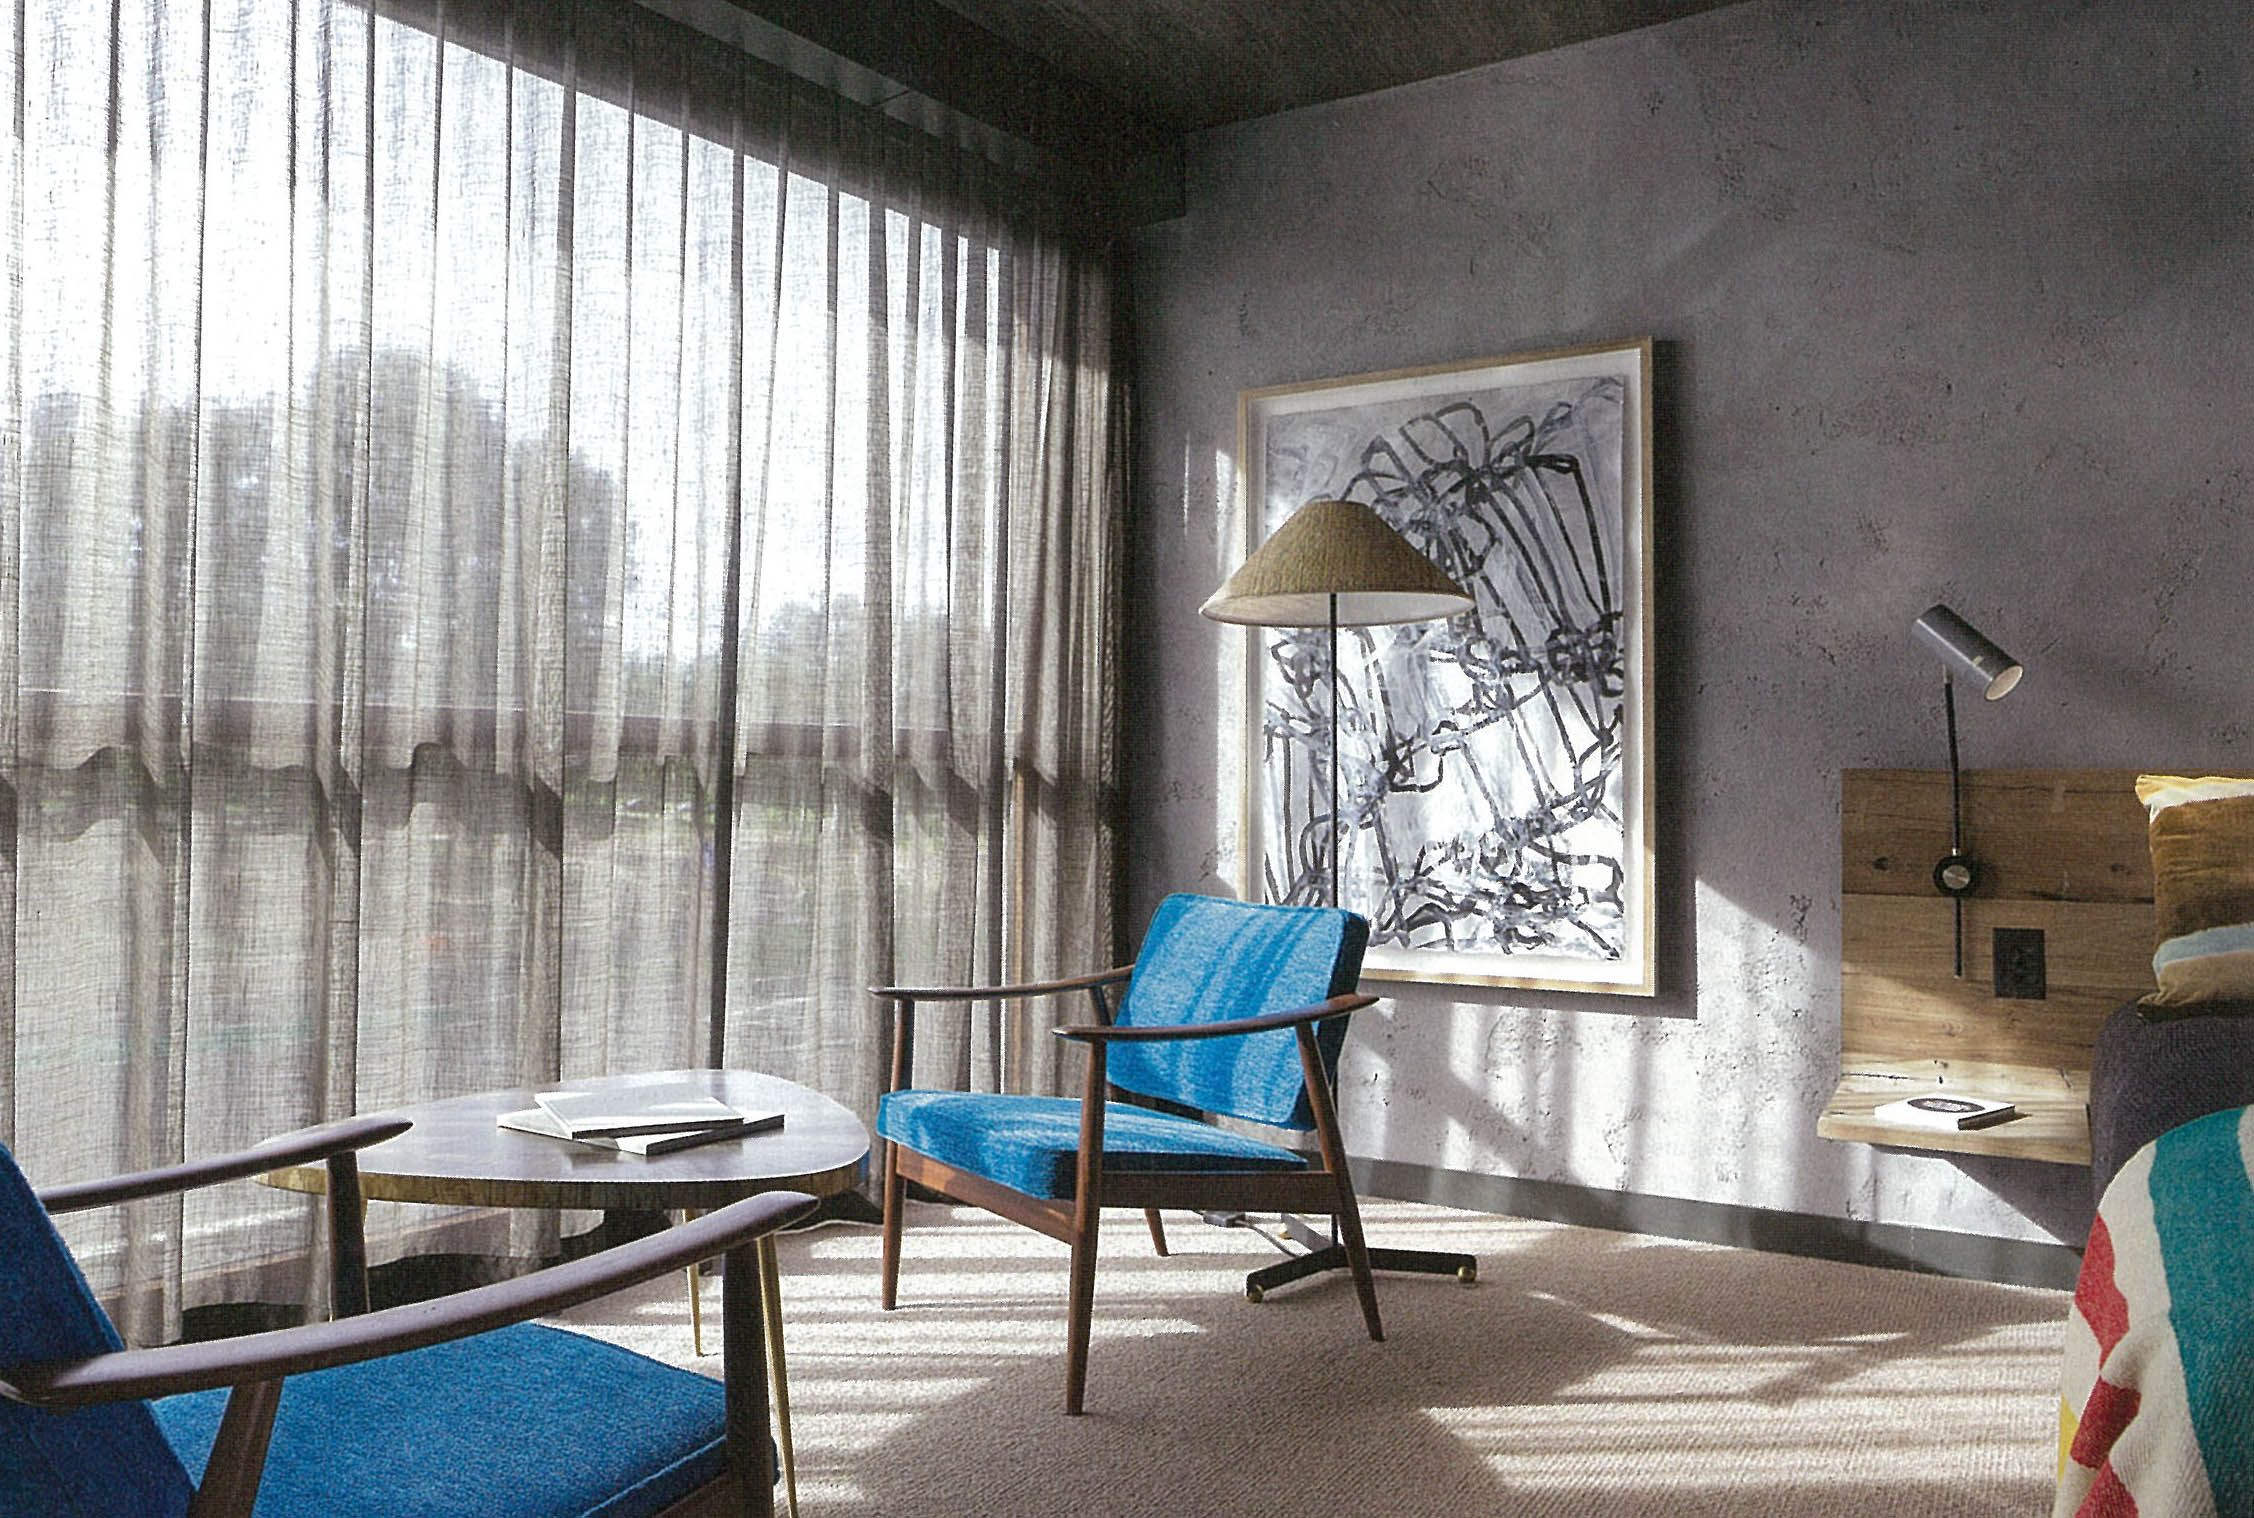 Hospitality and hotel window treatments sheer shades solar screen - Warwick Fabrics Aesop Sheer Drape Has Been Used Throughout The Exciting New Hotel Hotel Sheer Drapesdraperyartichokewindow